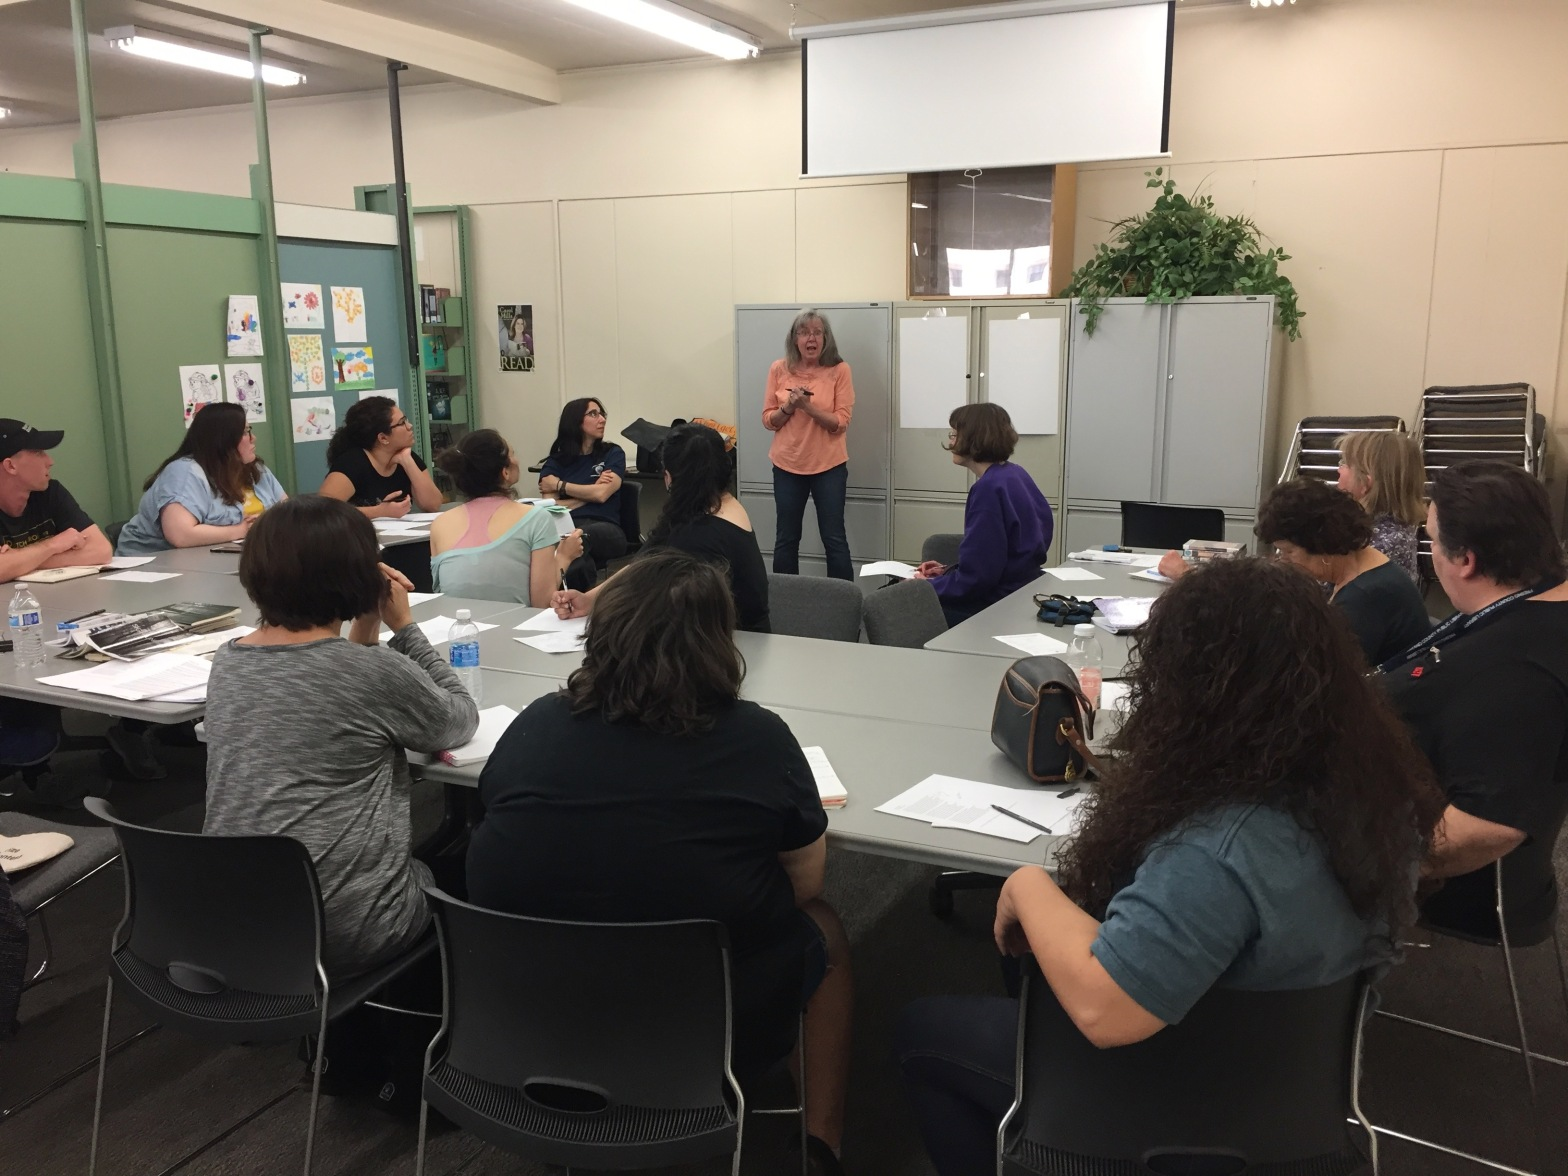 Megan Bohigian leading a poetry workshop at the library